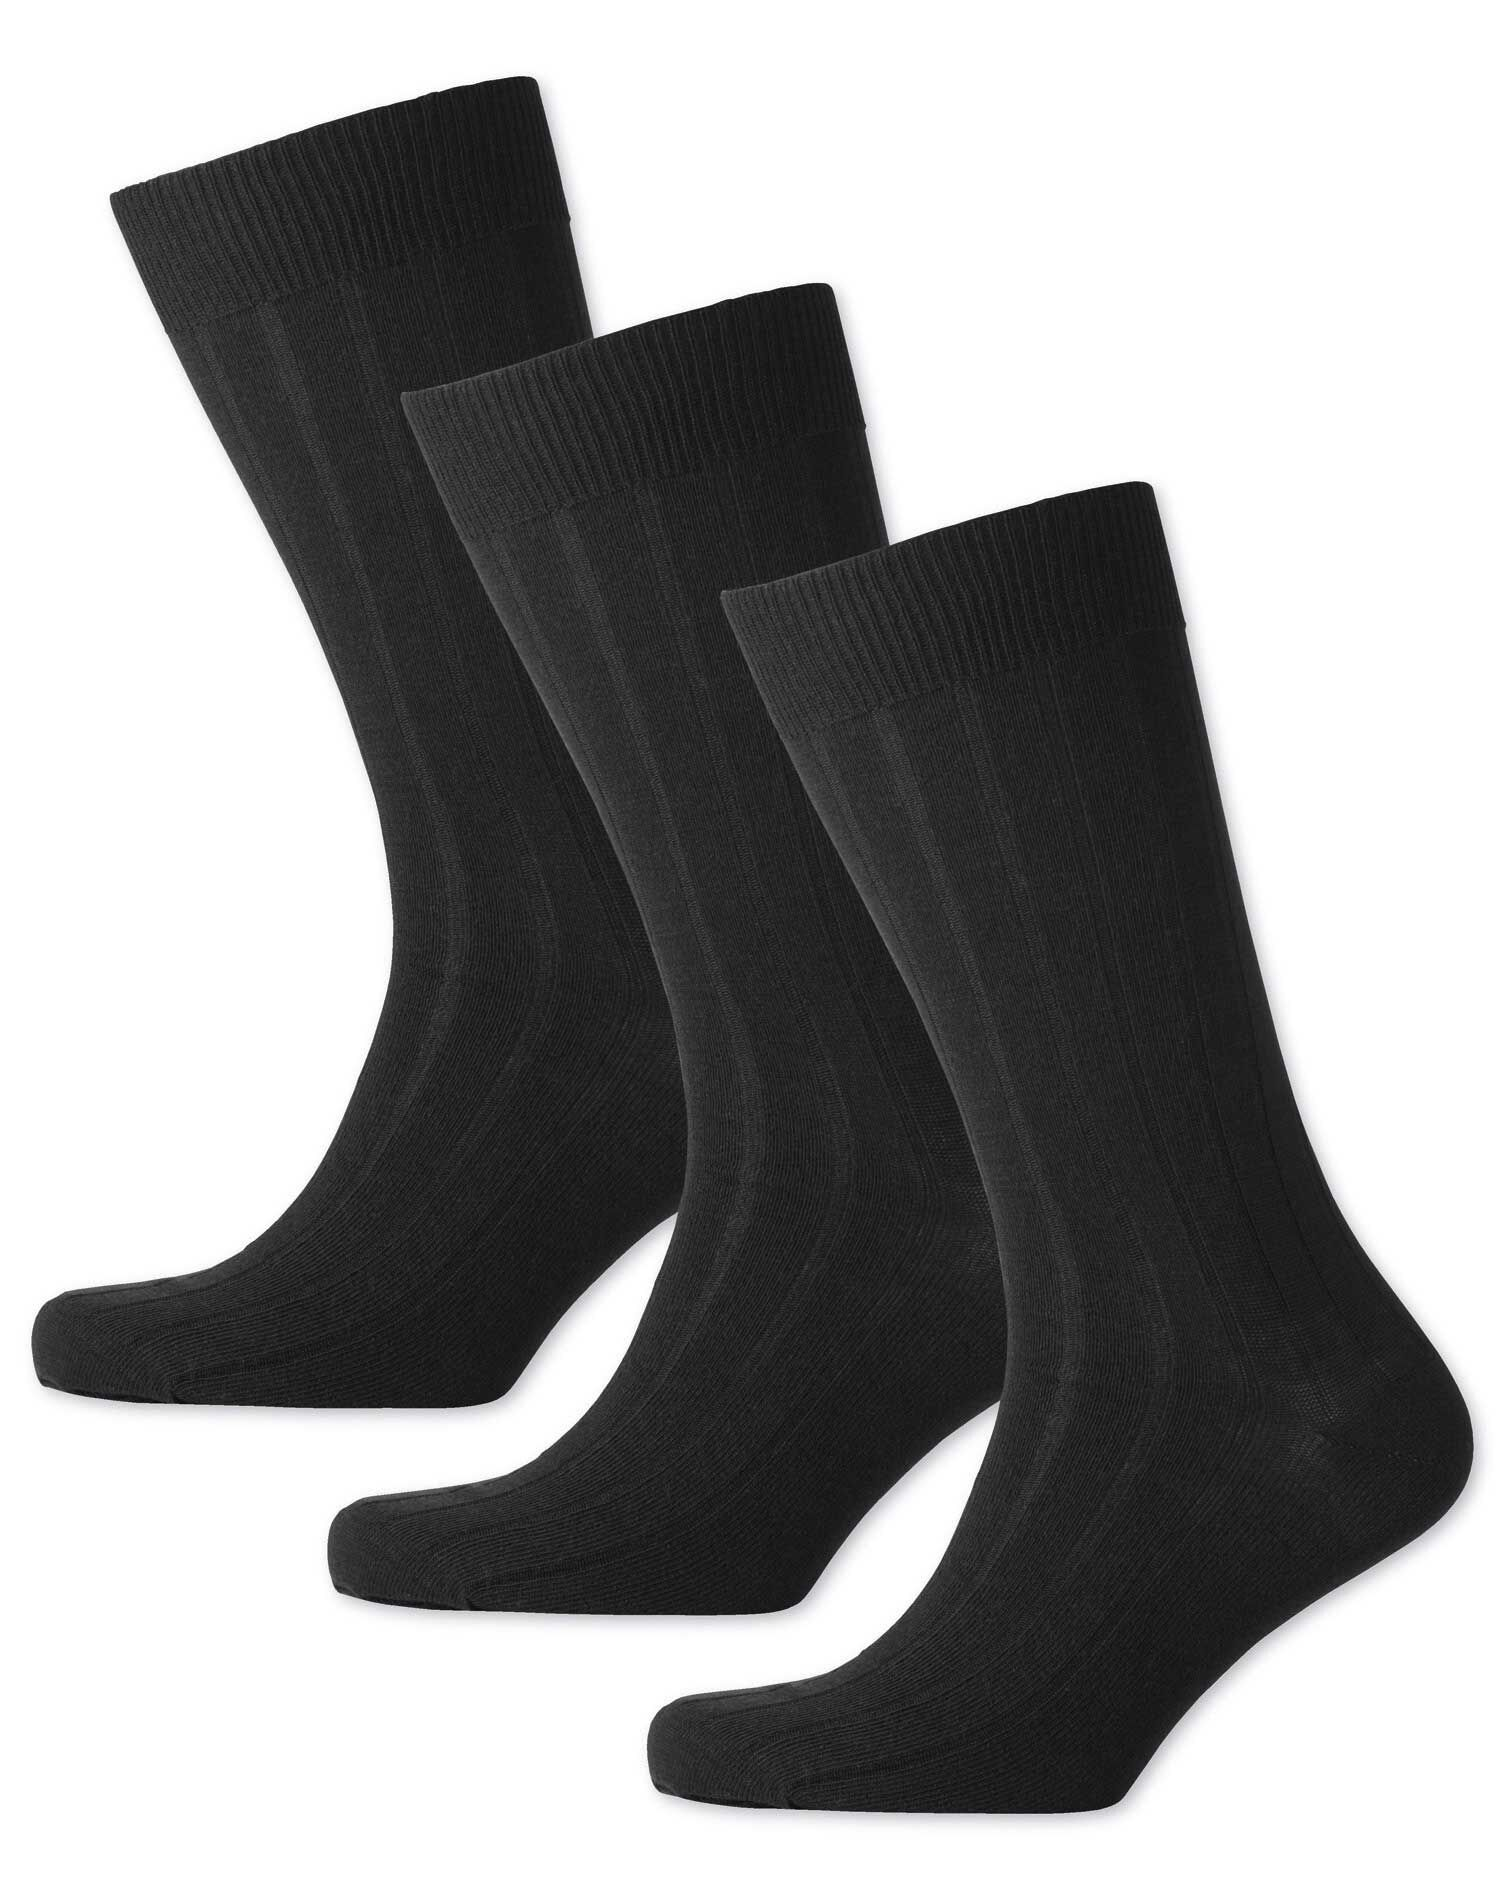 Black Wool Rich 3 Pack Socks Size Large by Charles Tyrwhitt